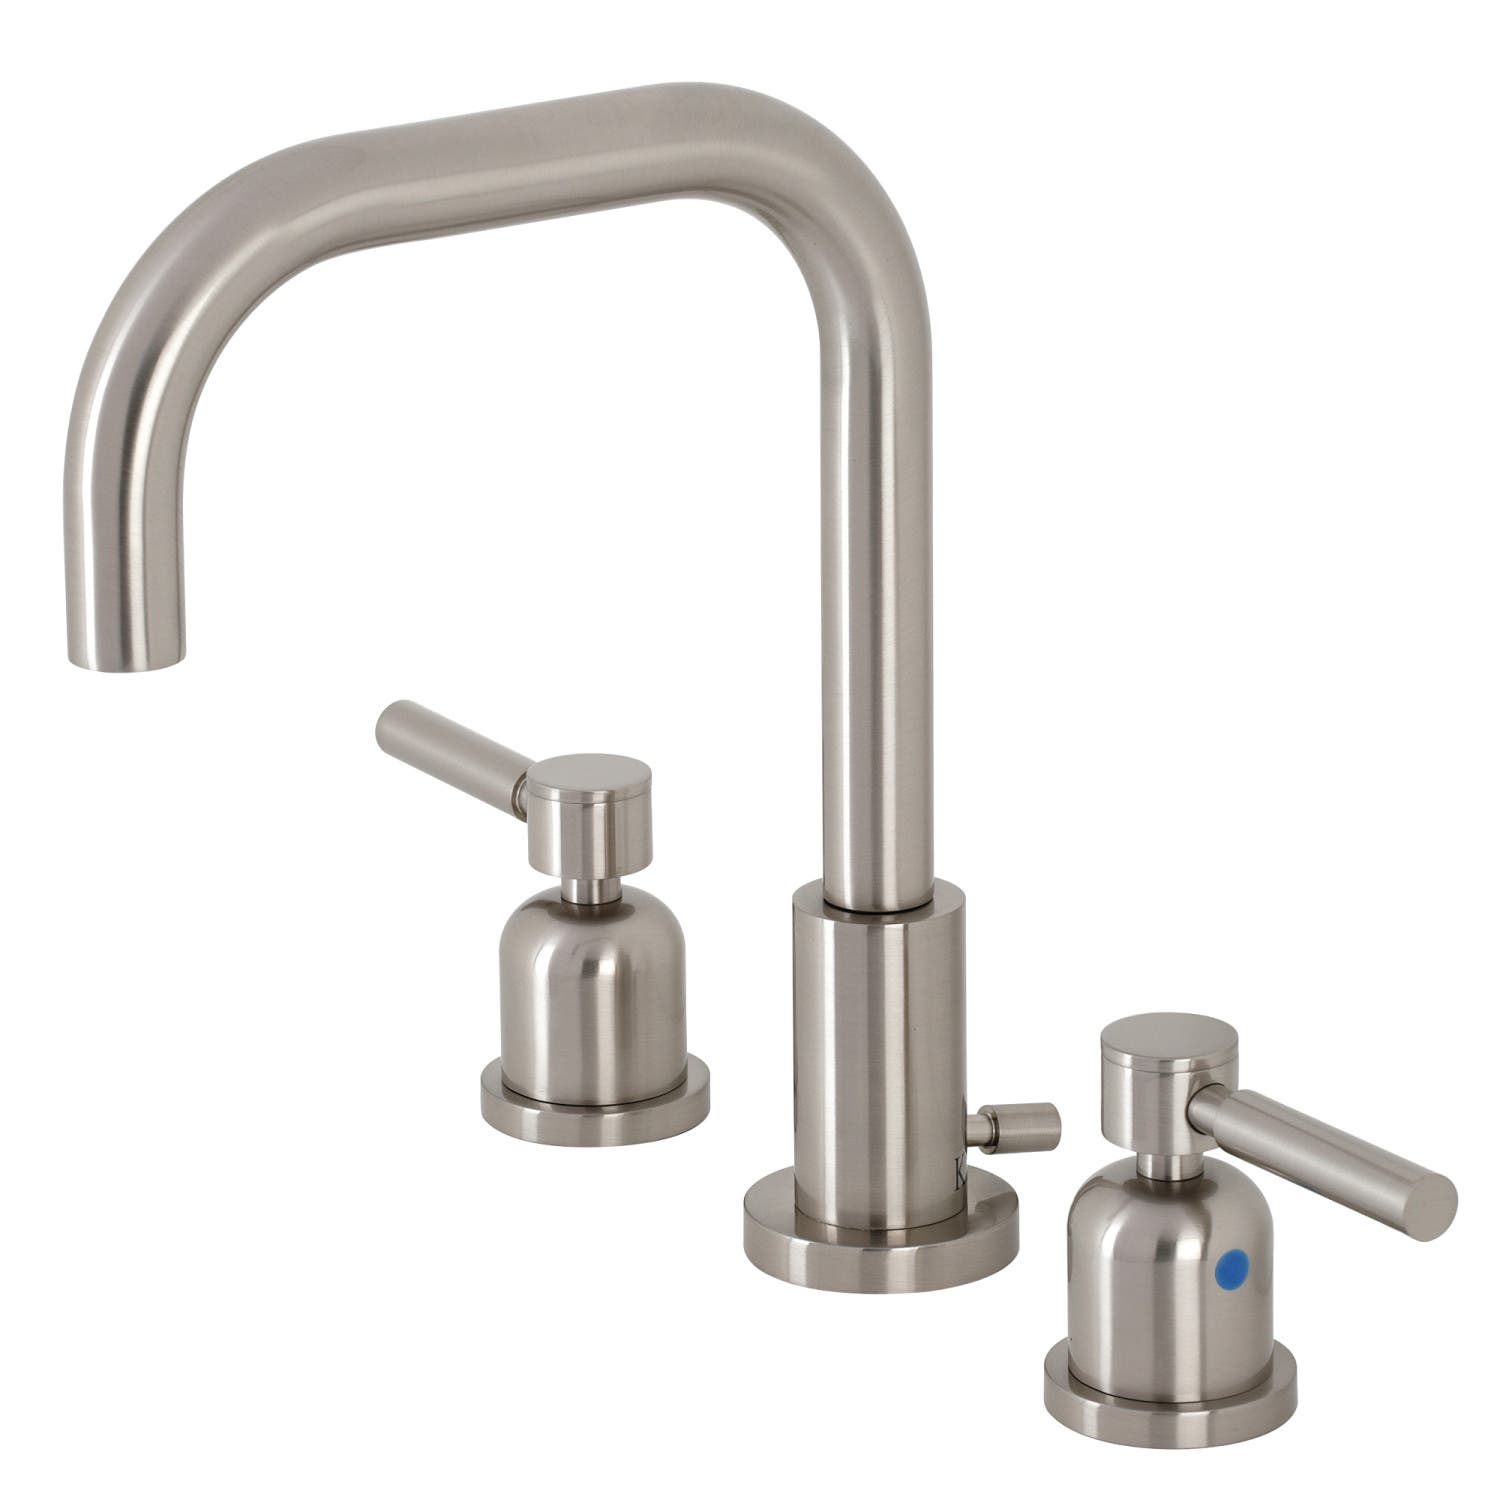 Kingston Brass FSC8938DL Concord Widespread Bathroom Faucet with Brass Pop-Up, Brushed Nickel